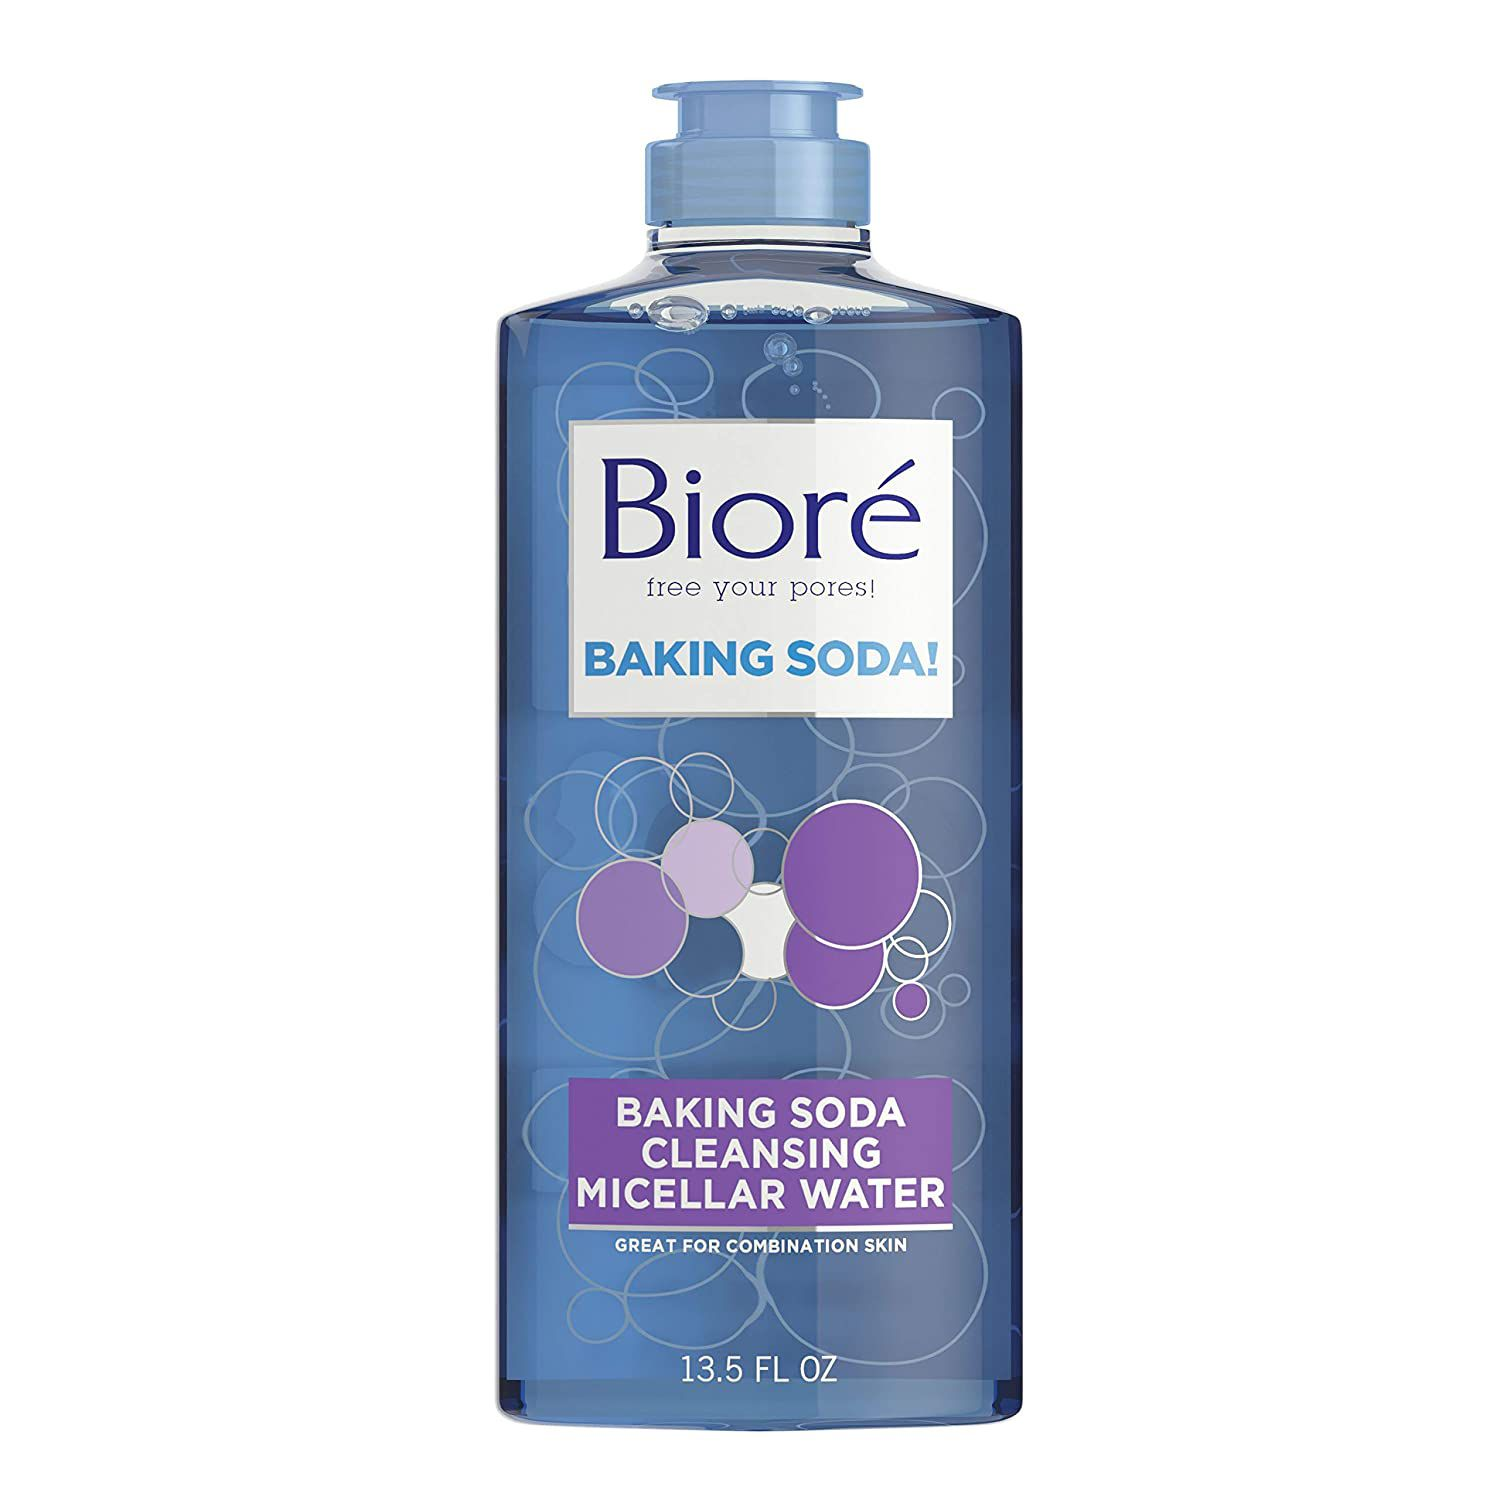 Biore Baking Soda Cleanser with Micellar Water